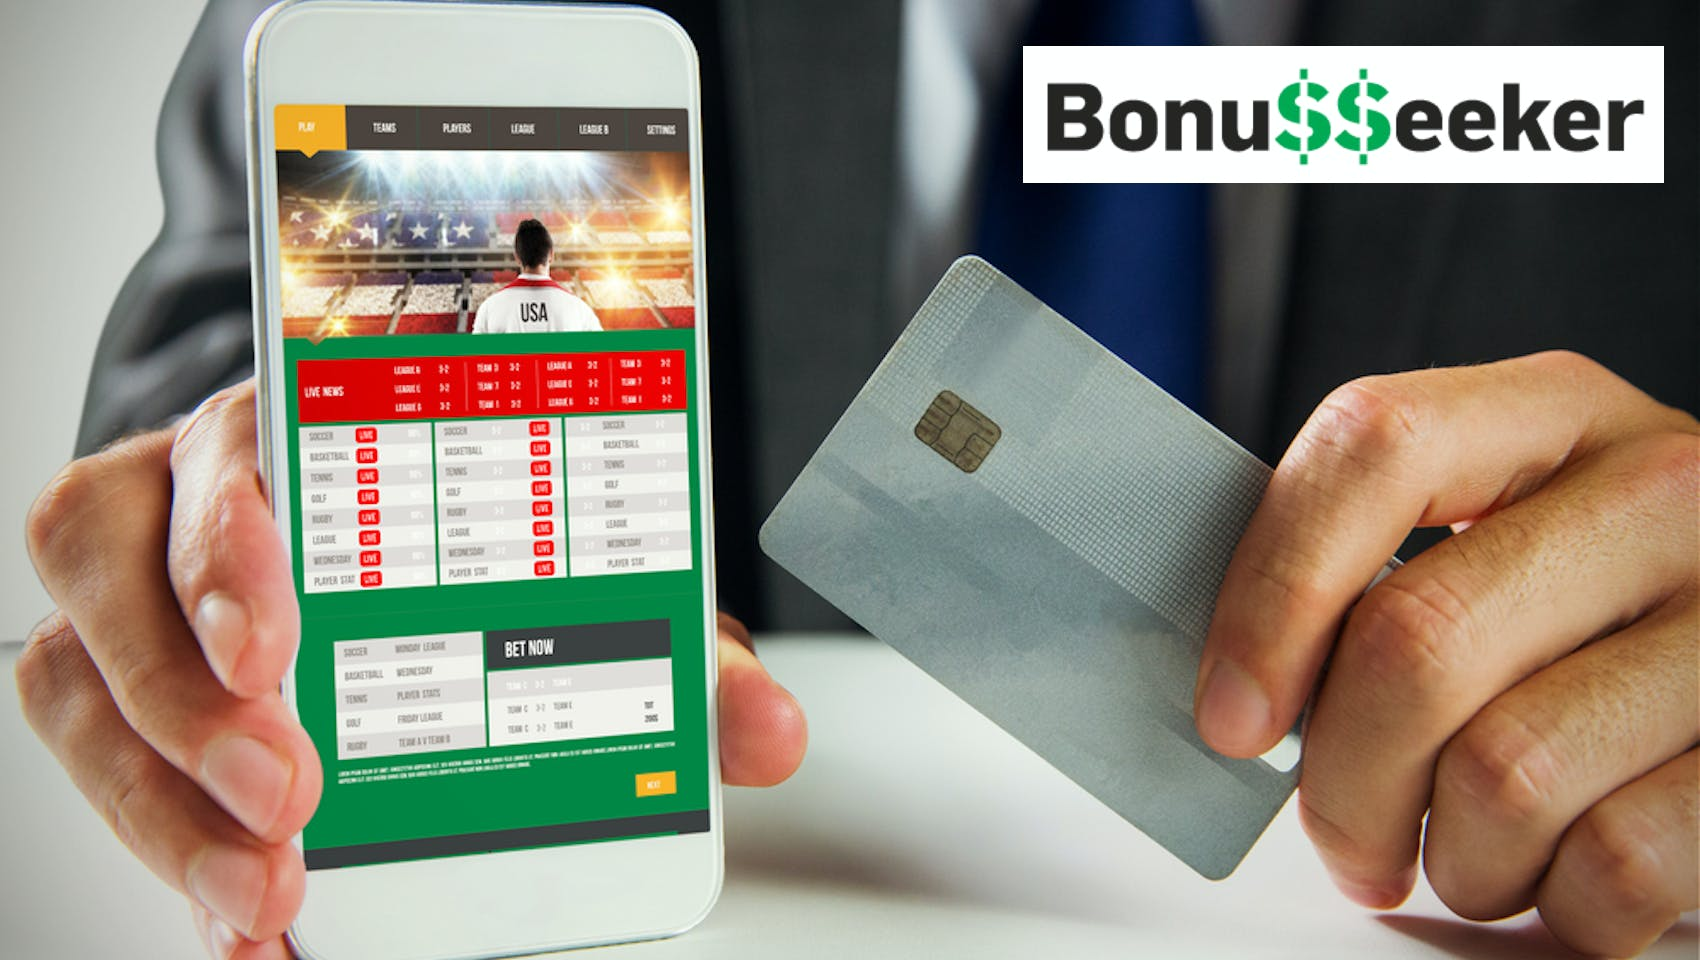 Online Sports Betting to be Made Legal in the USA - Expect sites in 2018